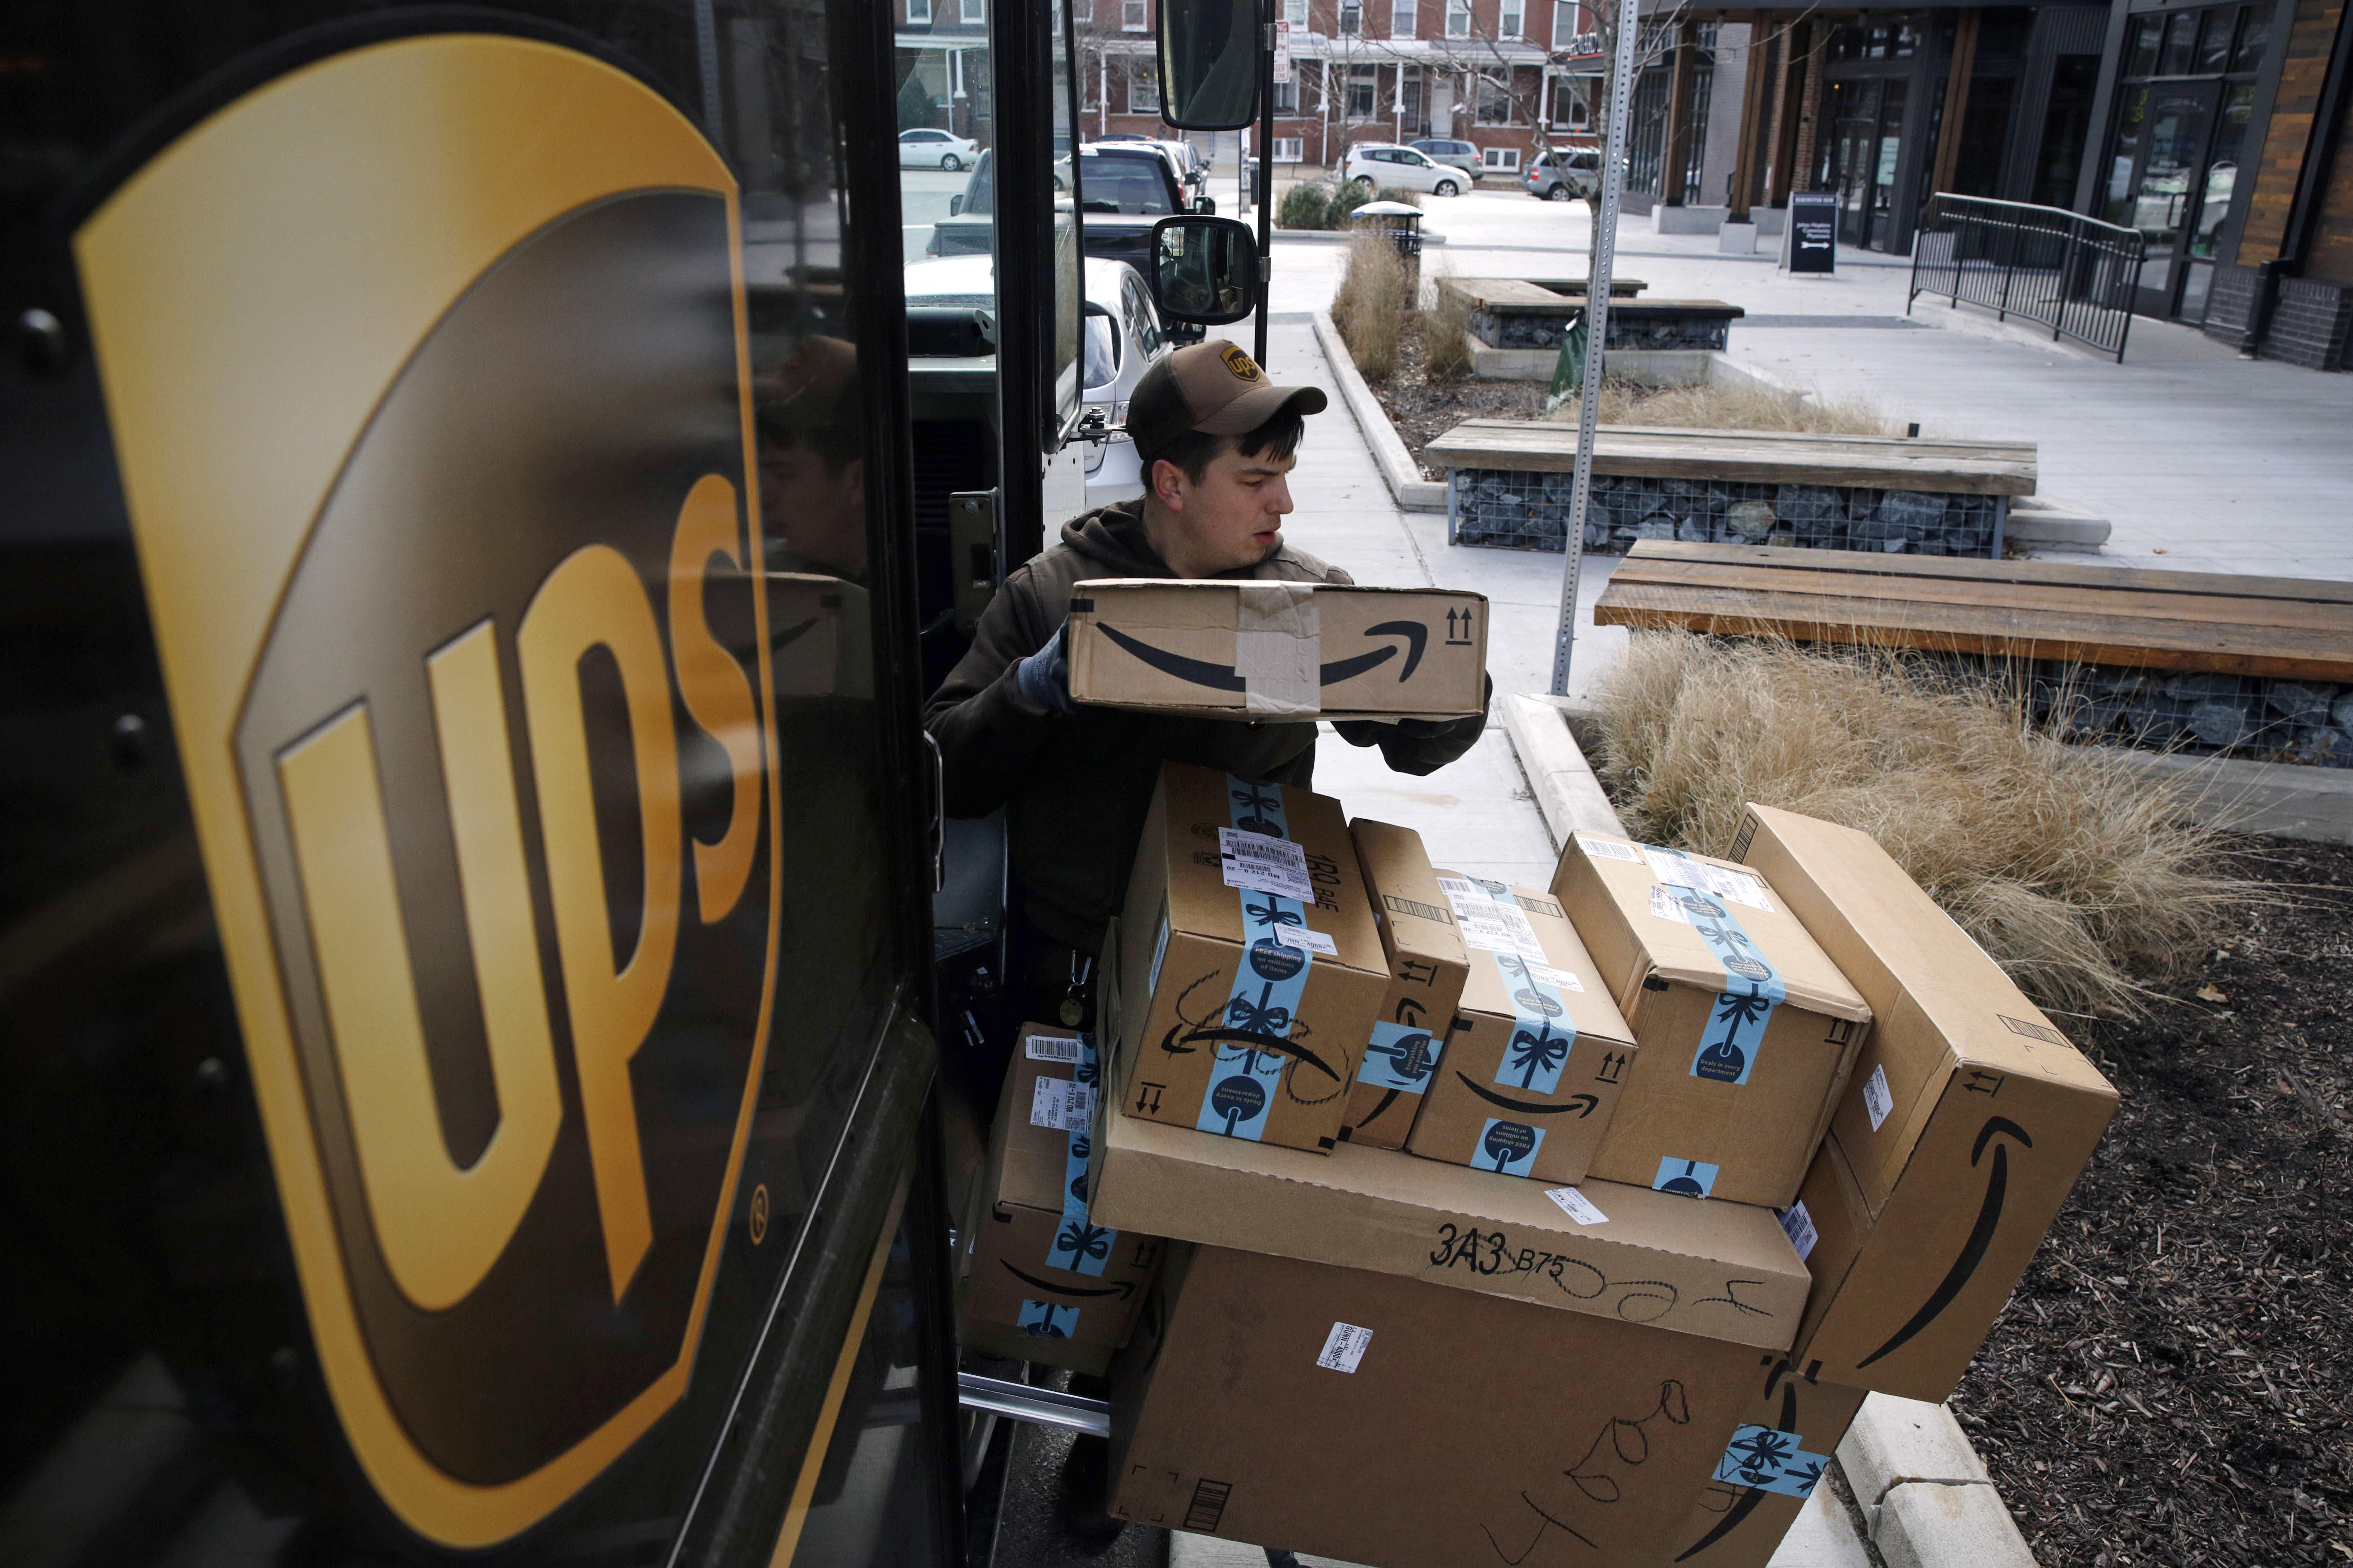 Ups Package Delivery Driver Pay >> Ups Plans To Hold Holiday Hiring Steady At About 100 000